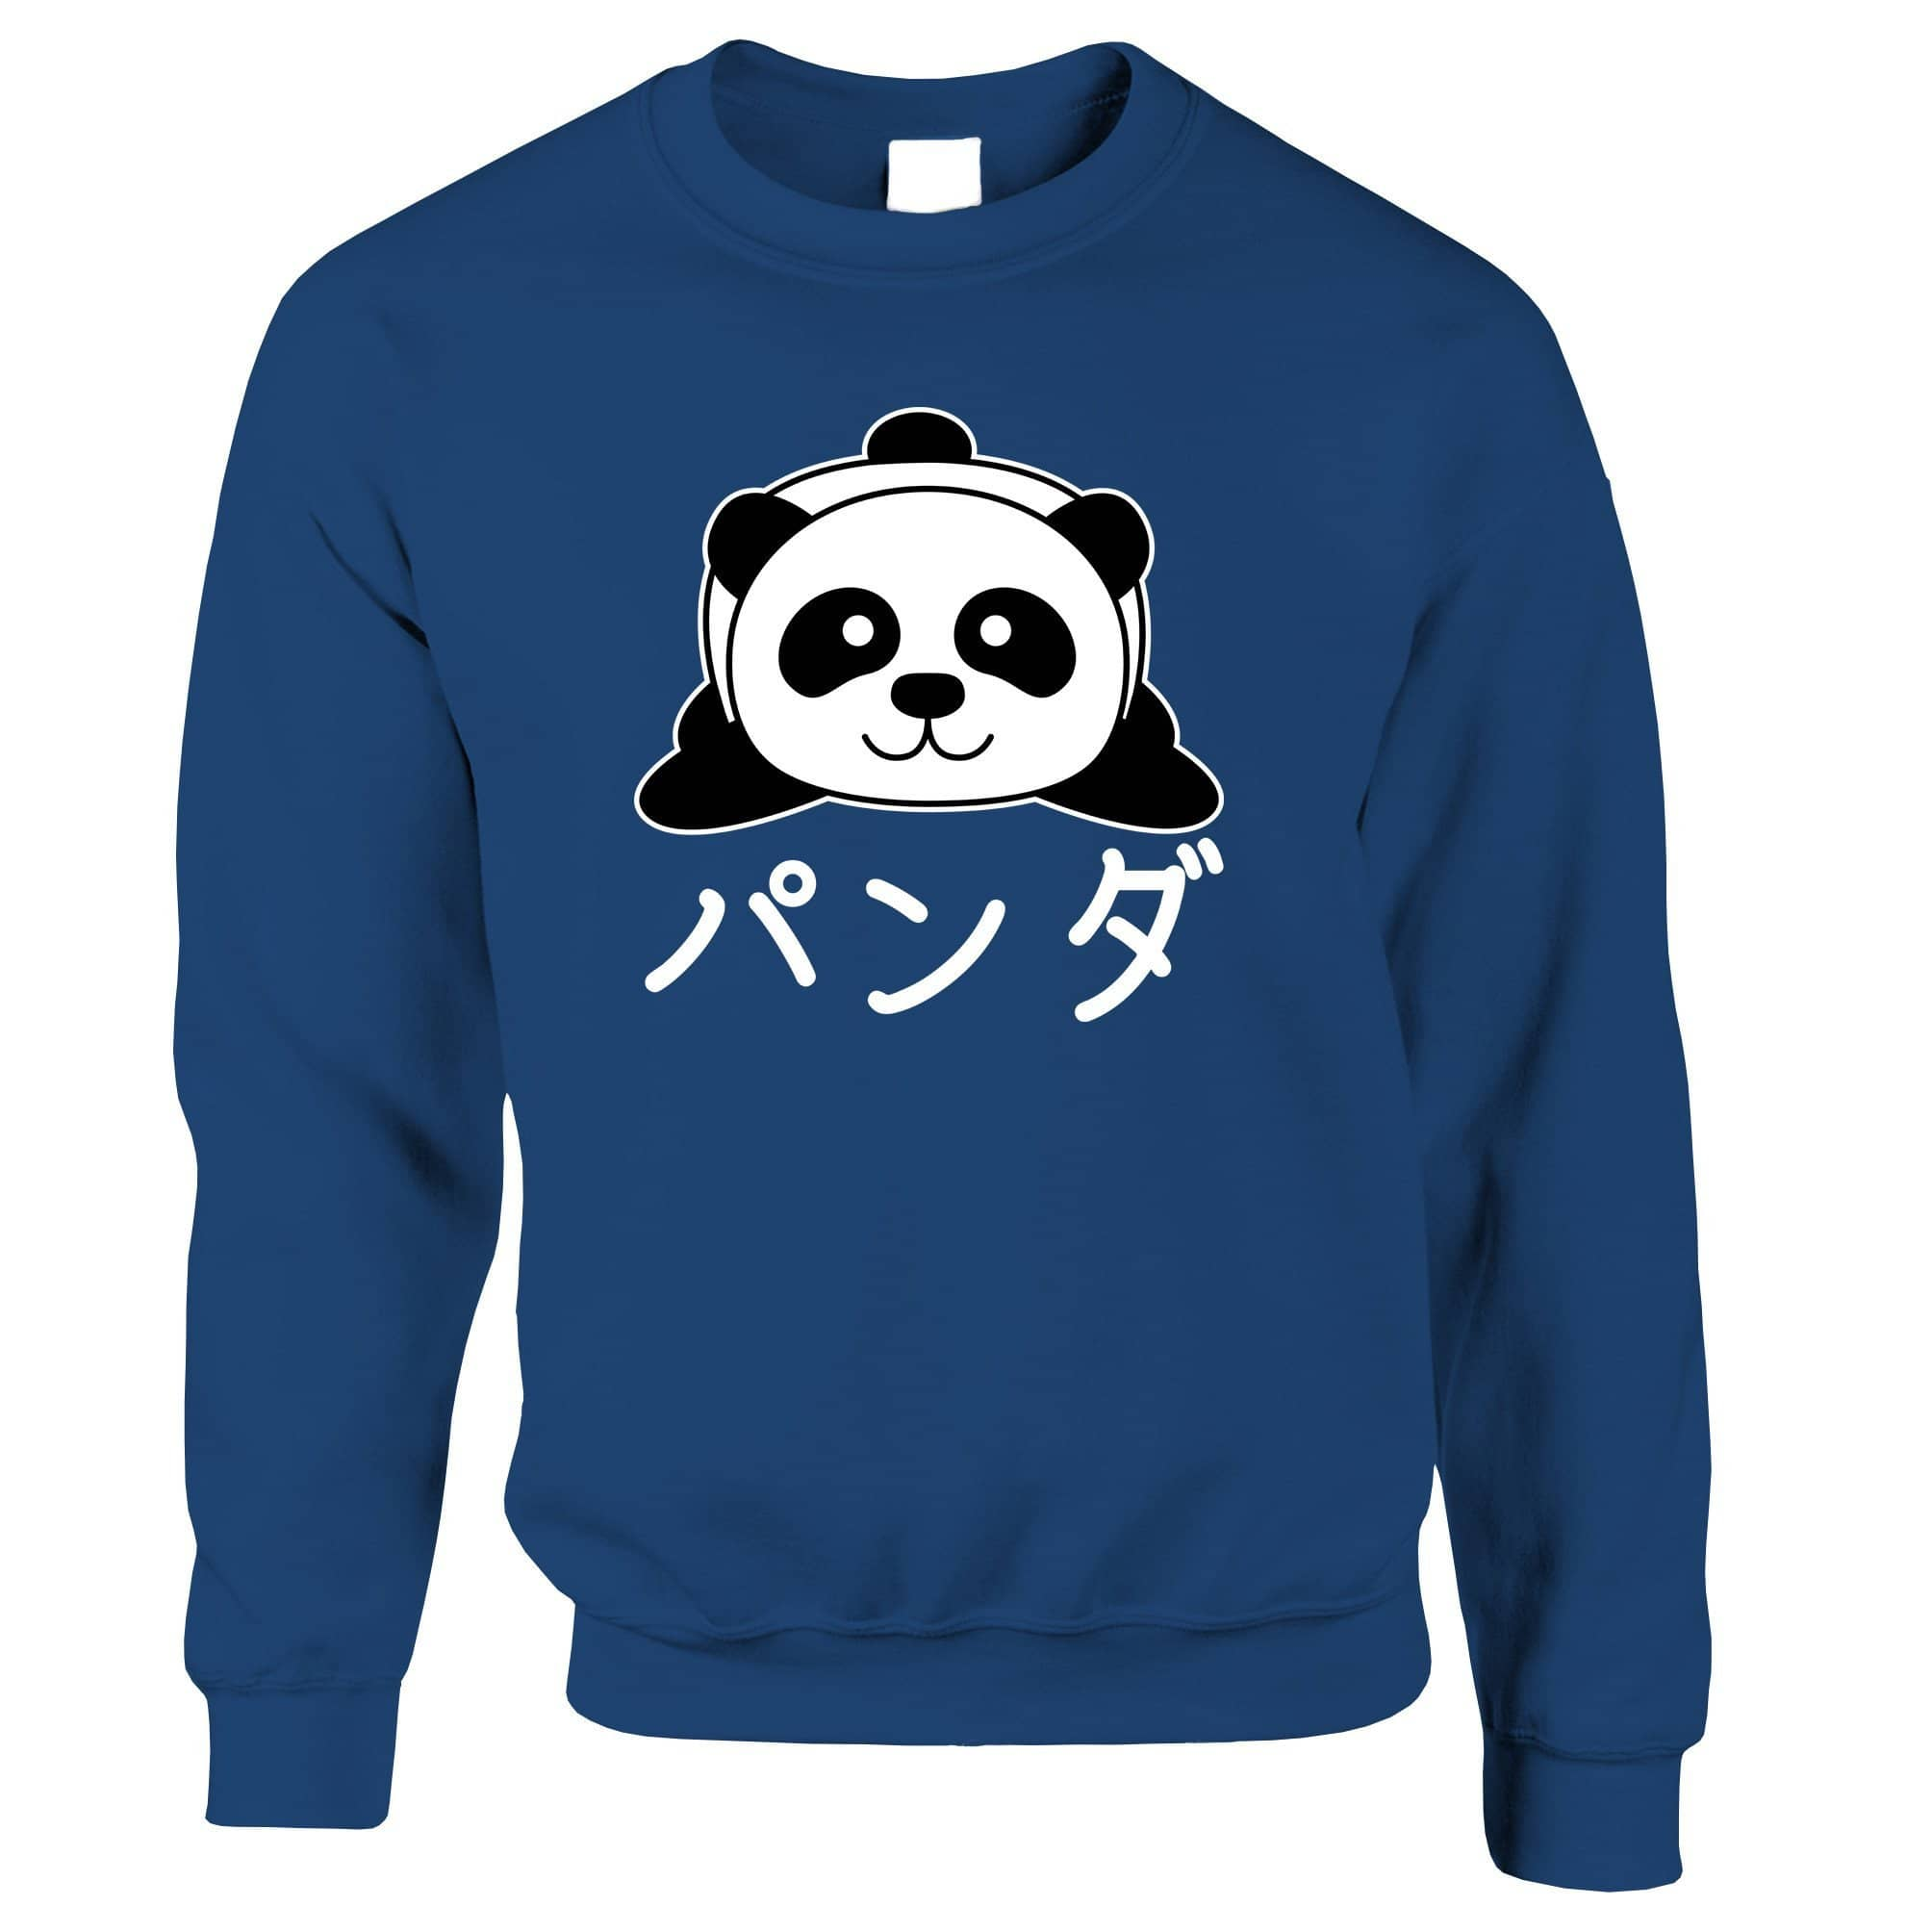 Cute Jumper Japanese Baby Panda With Text Sweatshirt Sweater